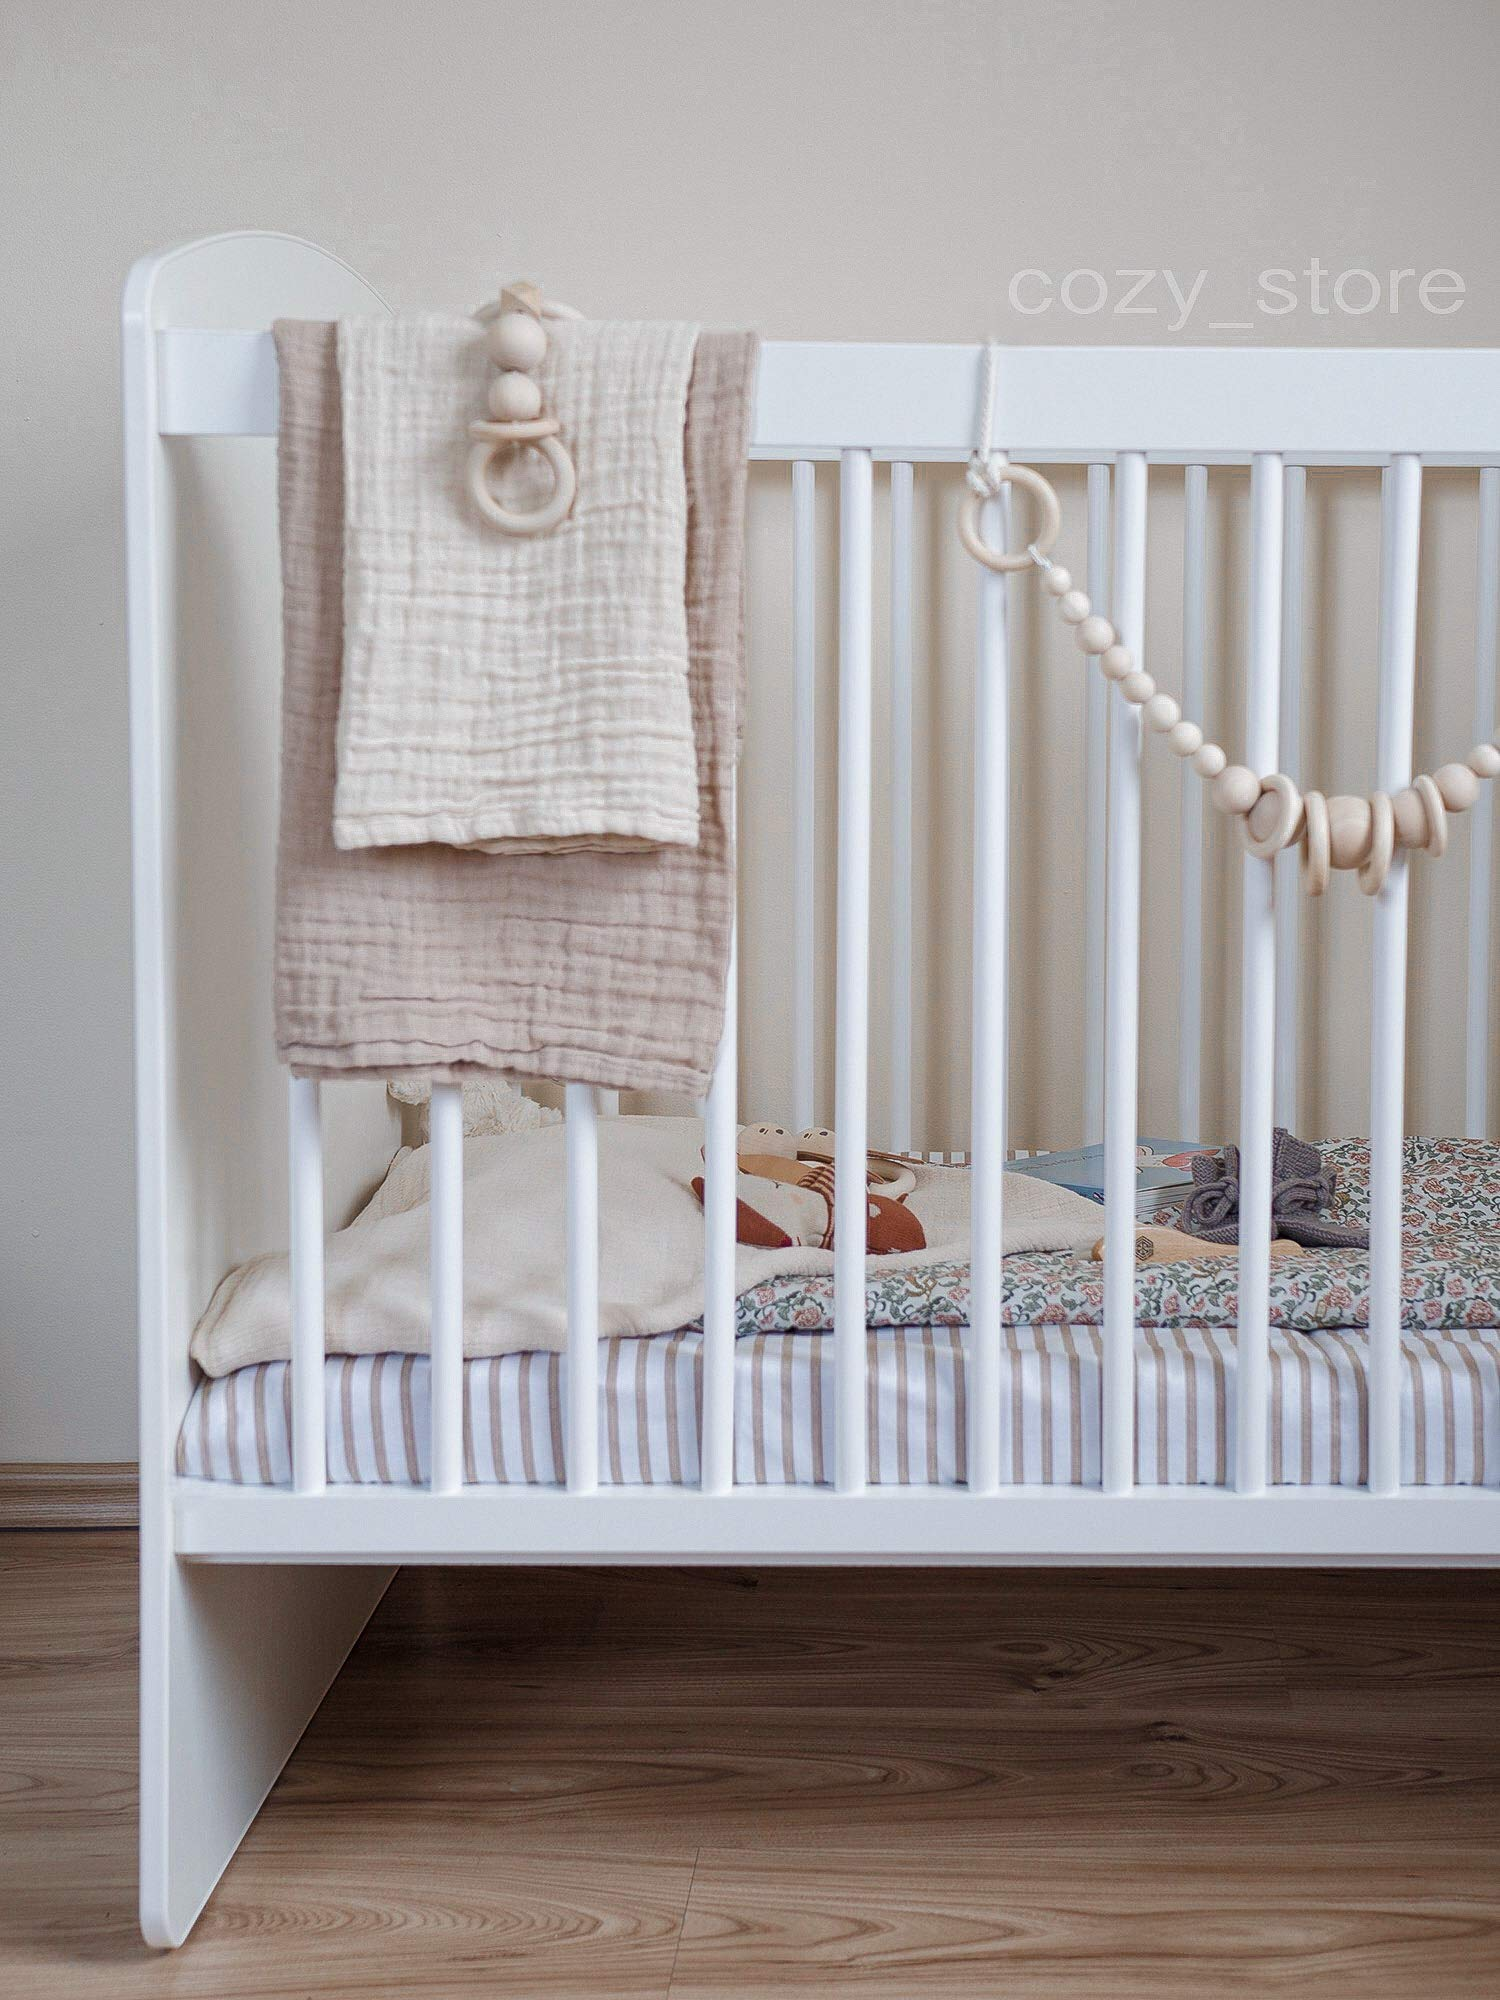 SOCOZY®   White Solid Pine Wood Baby Cot Bed I Free Healthy Coconut&BUCKWHEAT Mattress I Bed for Baby   3 Mattress Positions   ECO Paint   Minimalistic   120x60 SOCOZY ✔ HEALTH your growing child is the most important for us - The bed is made of ecological board and pine wood and the cot is covered with non-toxic lacquers ✔ ENJOY the view of the child playing in the cot and have a moment to yourself - as mom you deserve it more than anyone else ✔ GIVE YOUR CHILD a peaceful and helathy sleep - Coconut mat provides a flat, hard but also elastic support for the body while sleeping, perfect air circulation and humidity control. The mat is ecological. 5